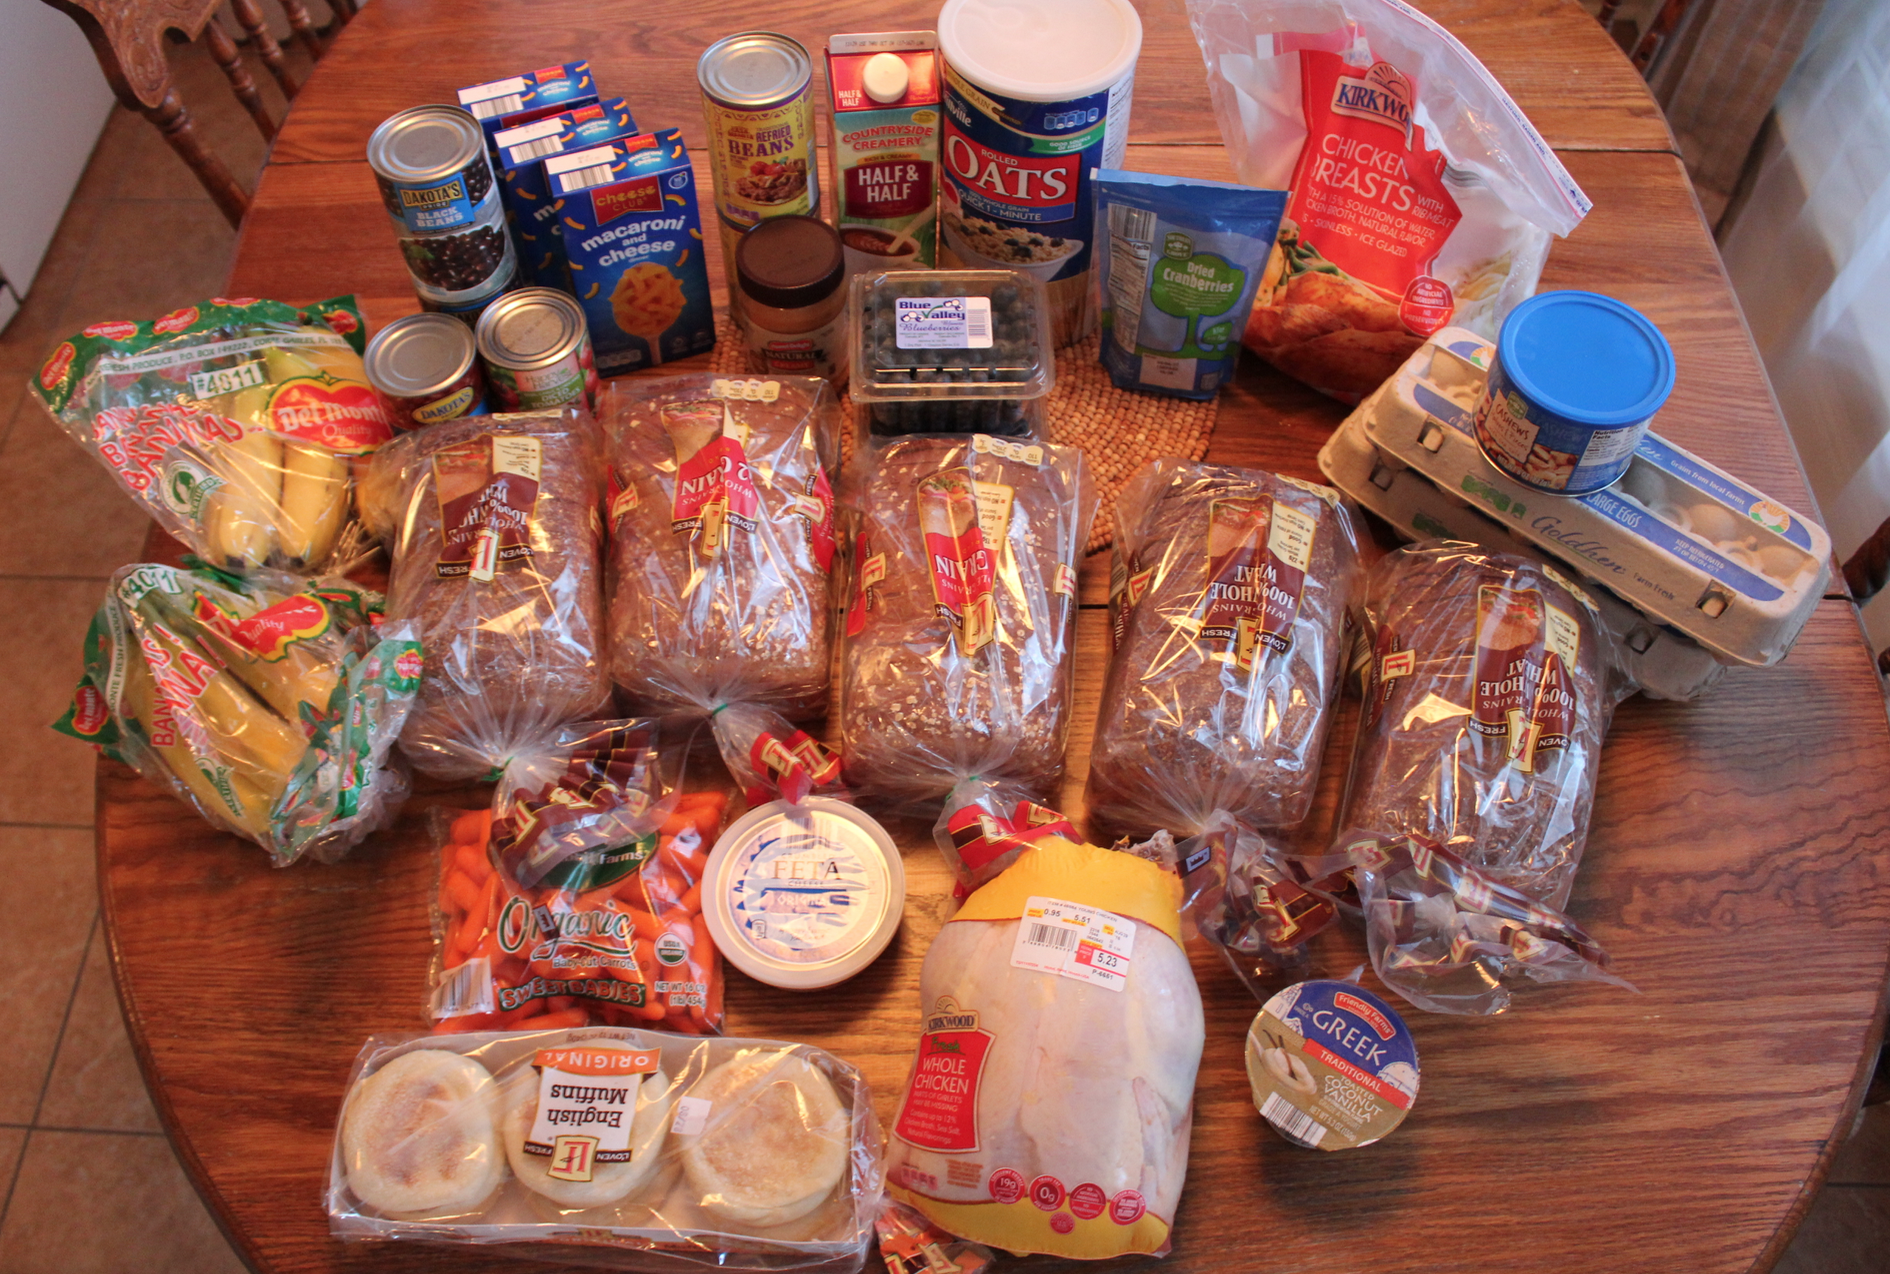 This Week's $80 Grocery Shopping Trip